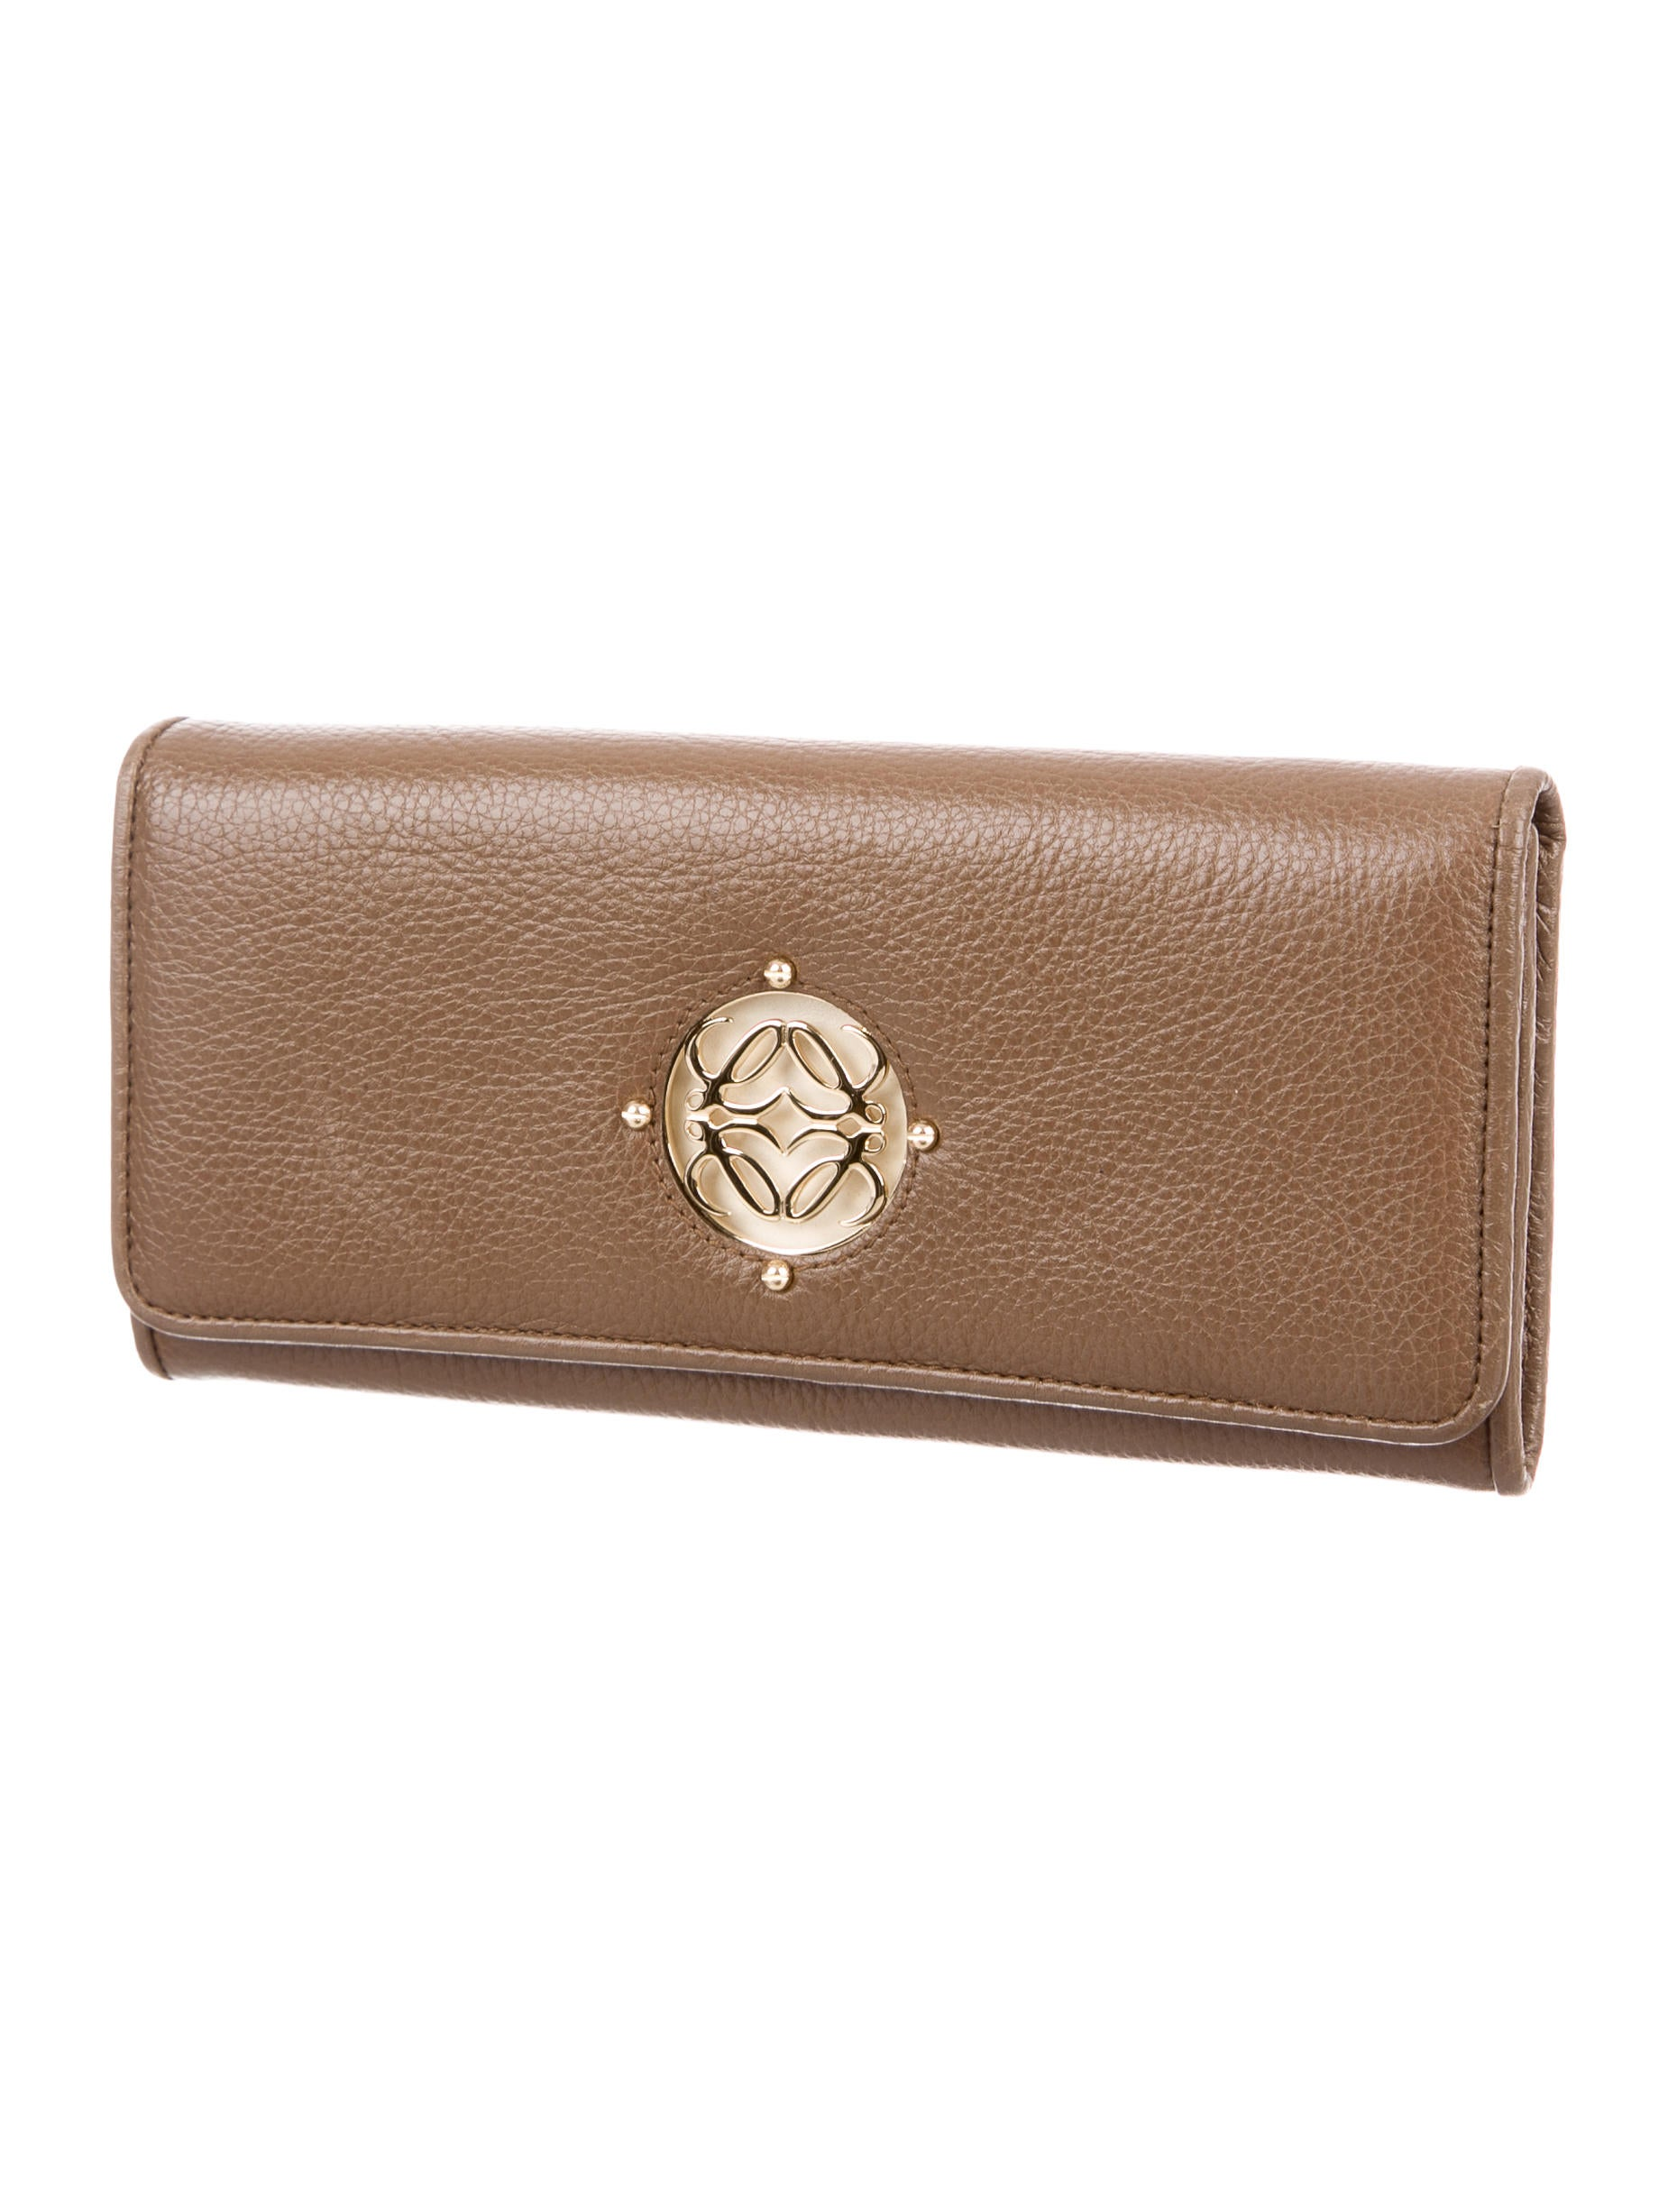 Loewe Leather Logo Wallet Accessories Low21452 The